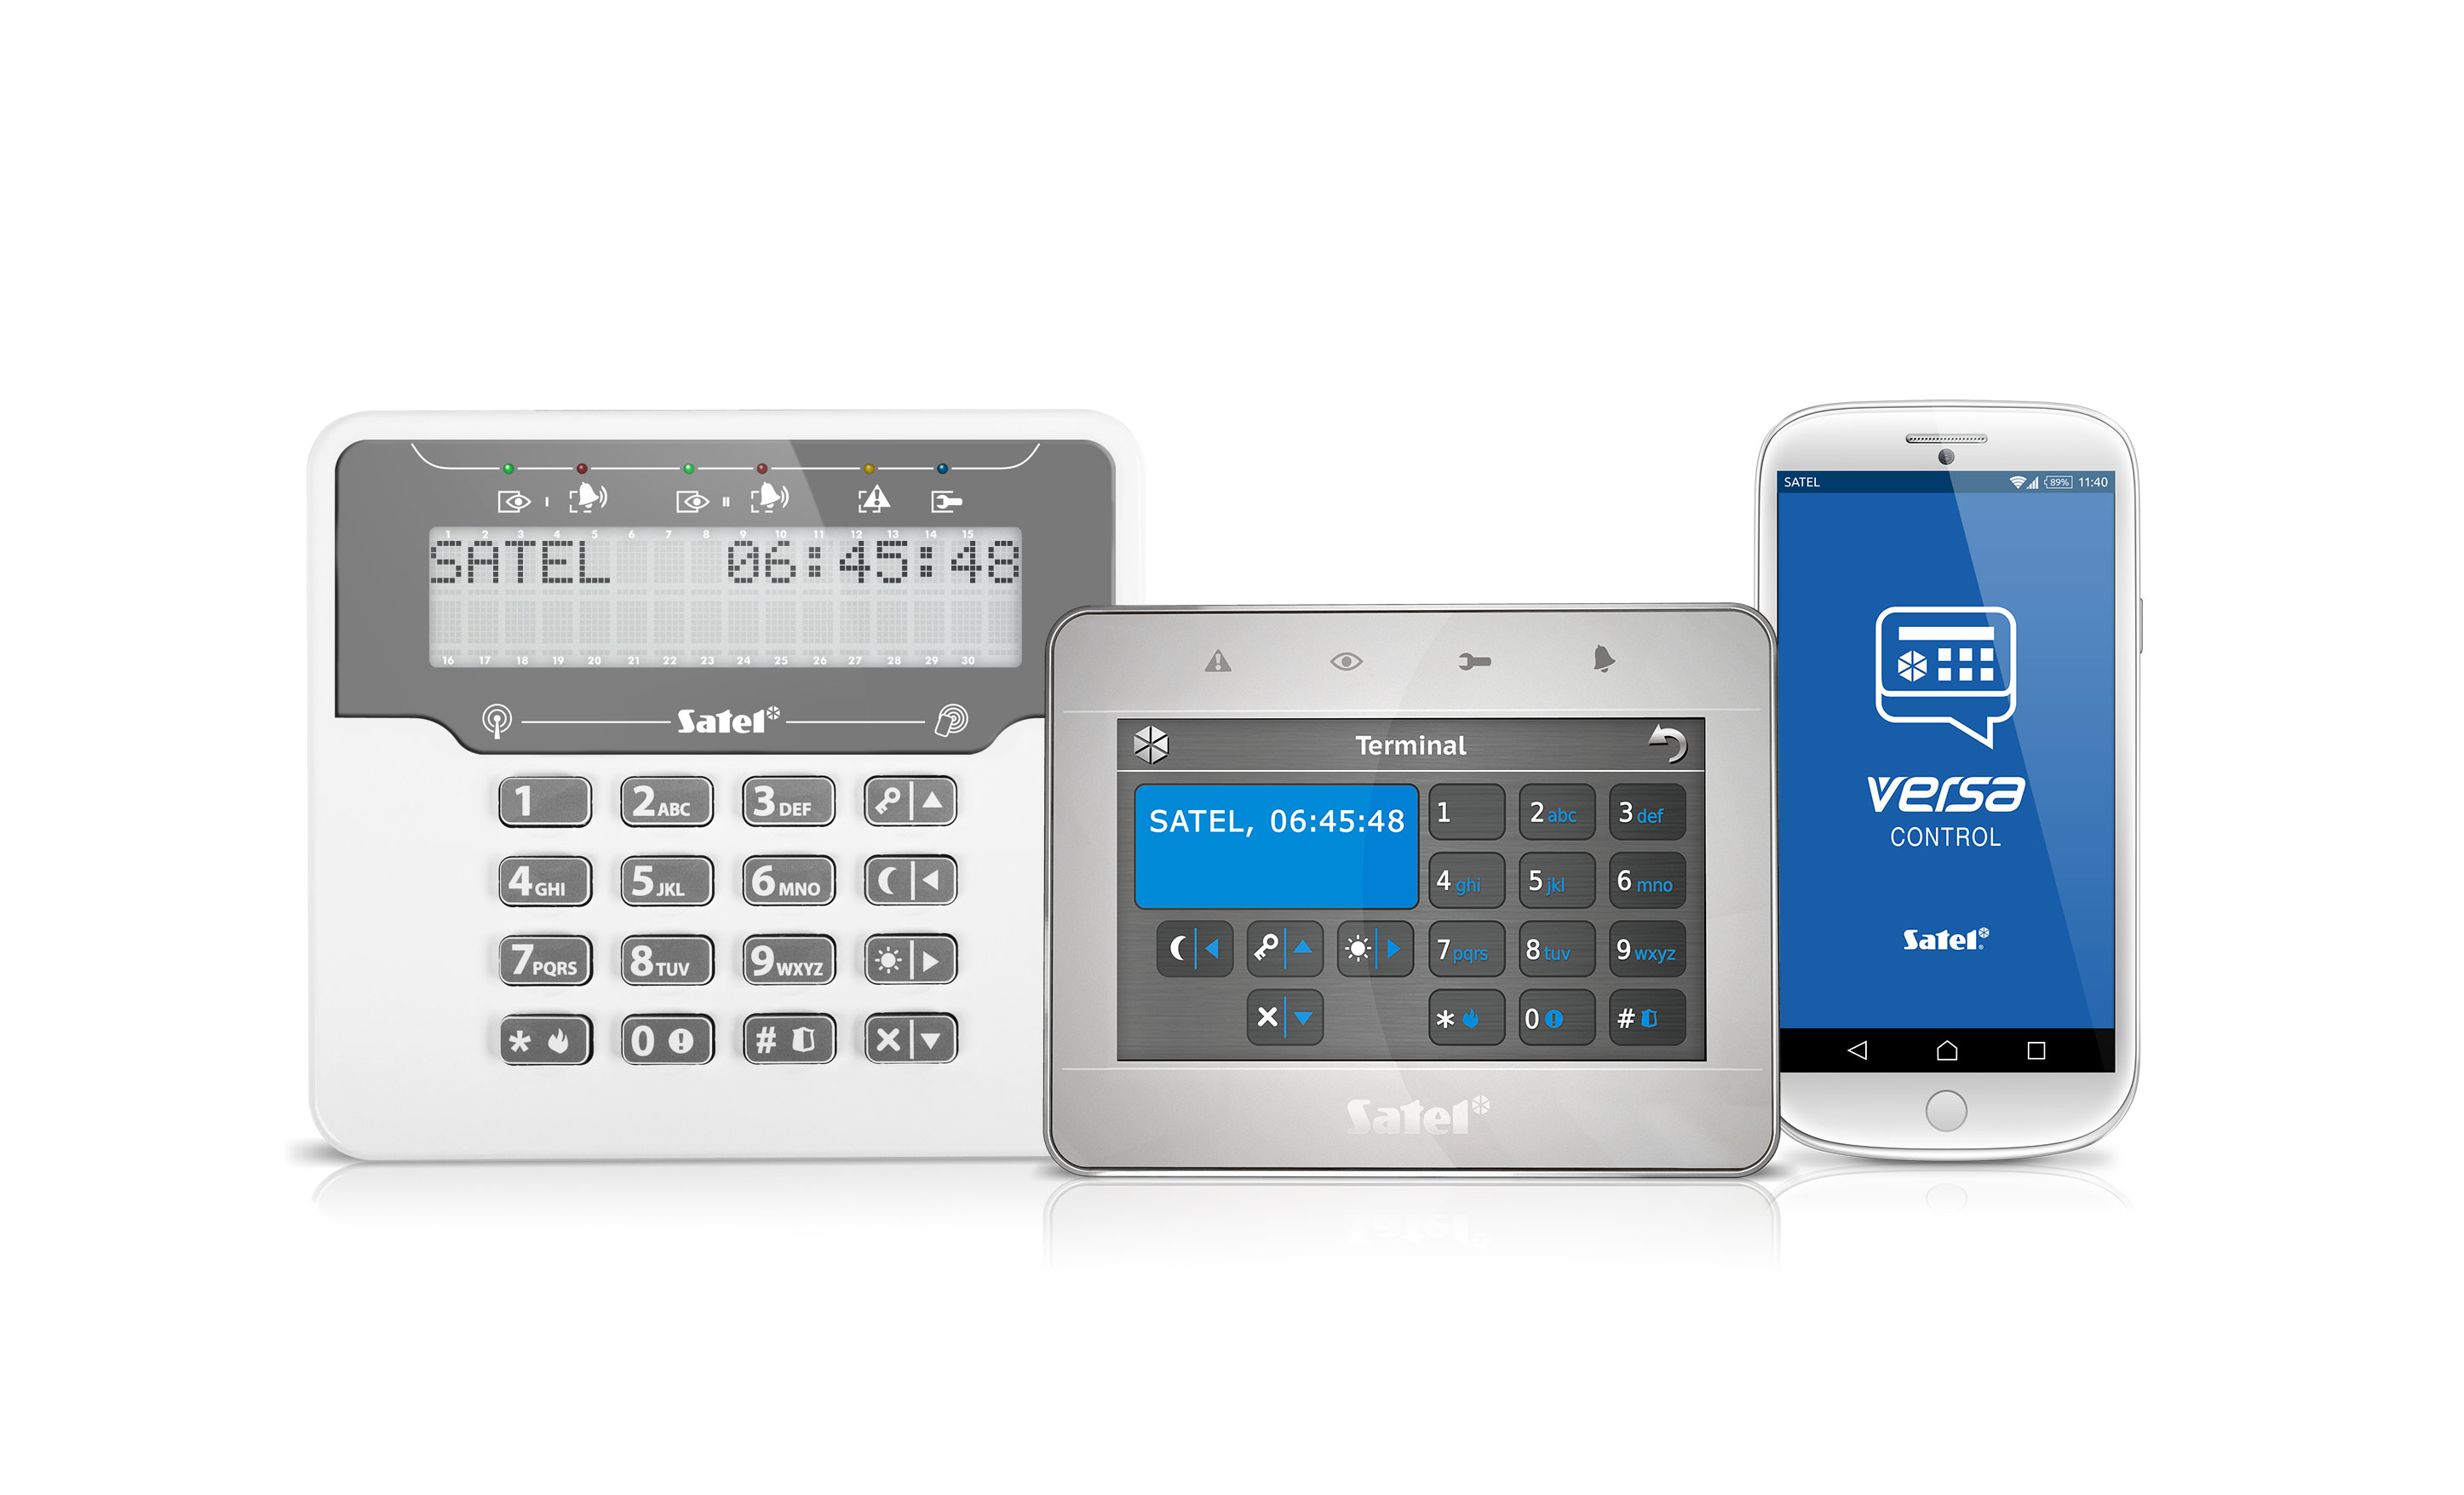 Exhibitor Satel Sp Z O Security Essen Dooropening Alarm Using Hall Sensor Electronics For You System Versa